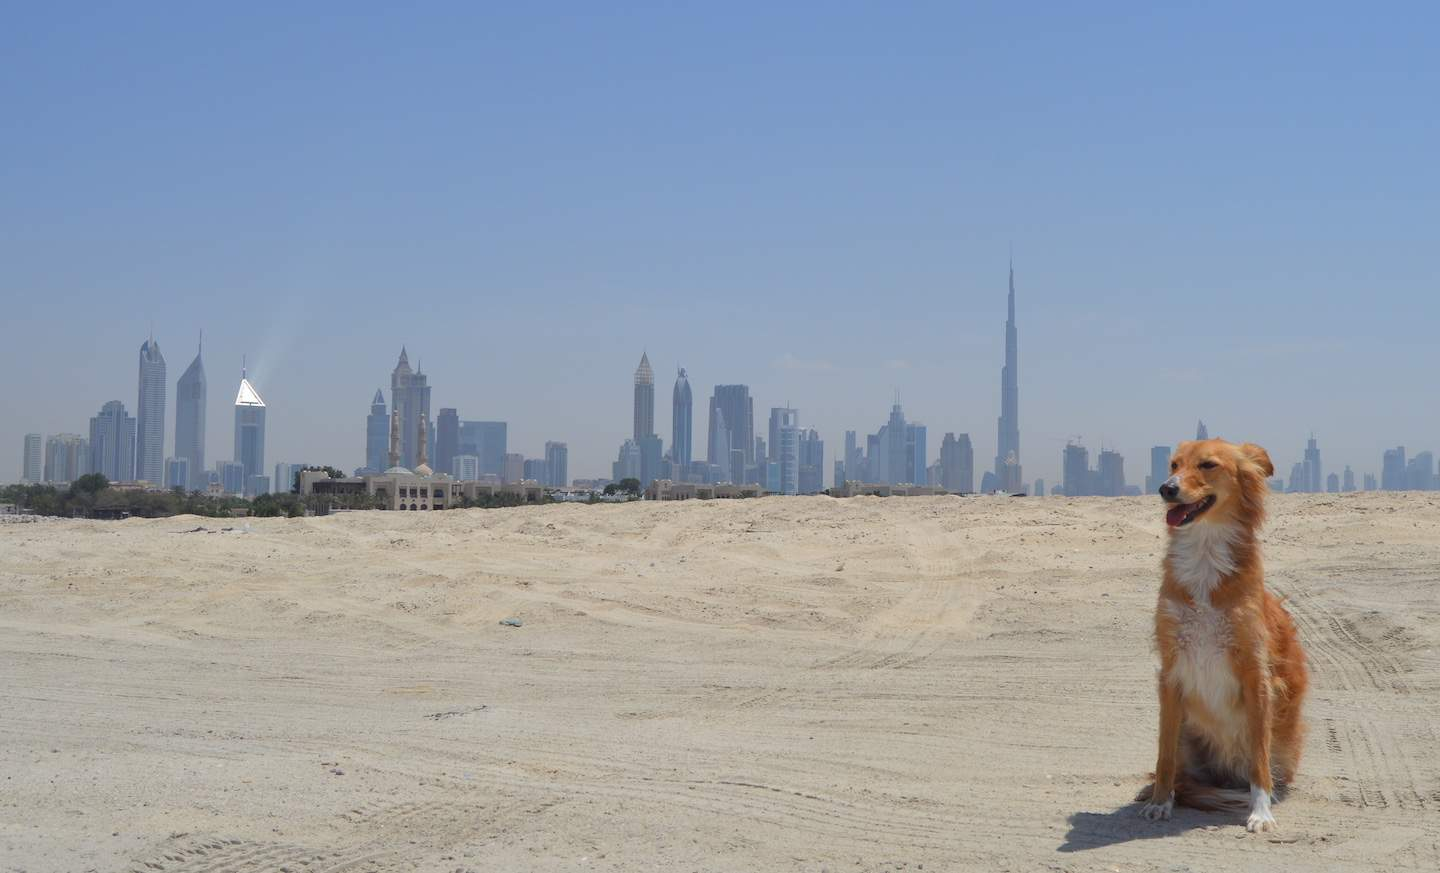 Beautie, The 3-legged Rescue Dog Raising Funds For Dog Shelters with the Dubai Skyline